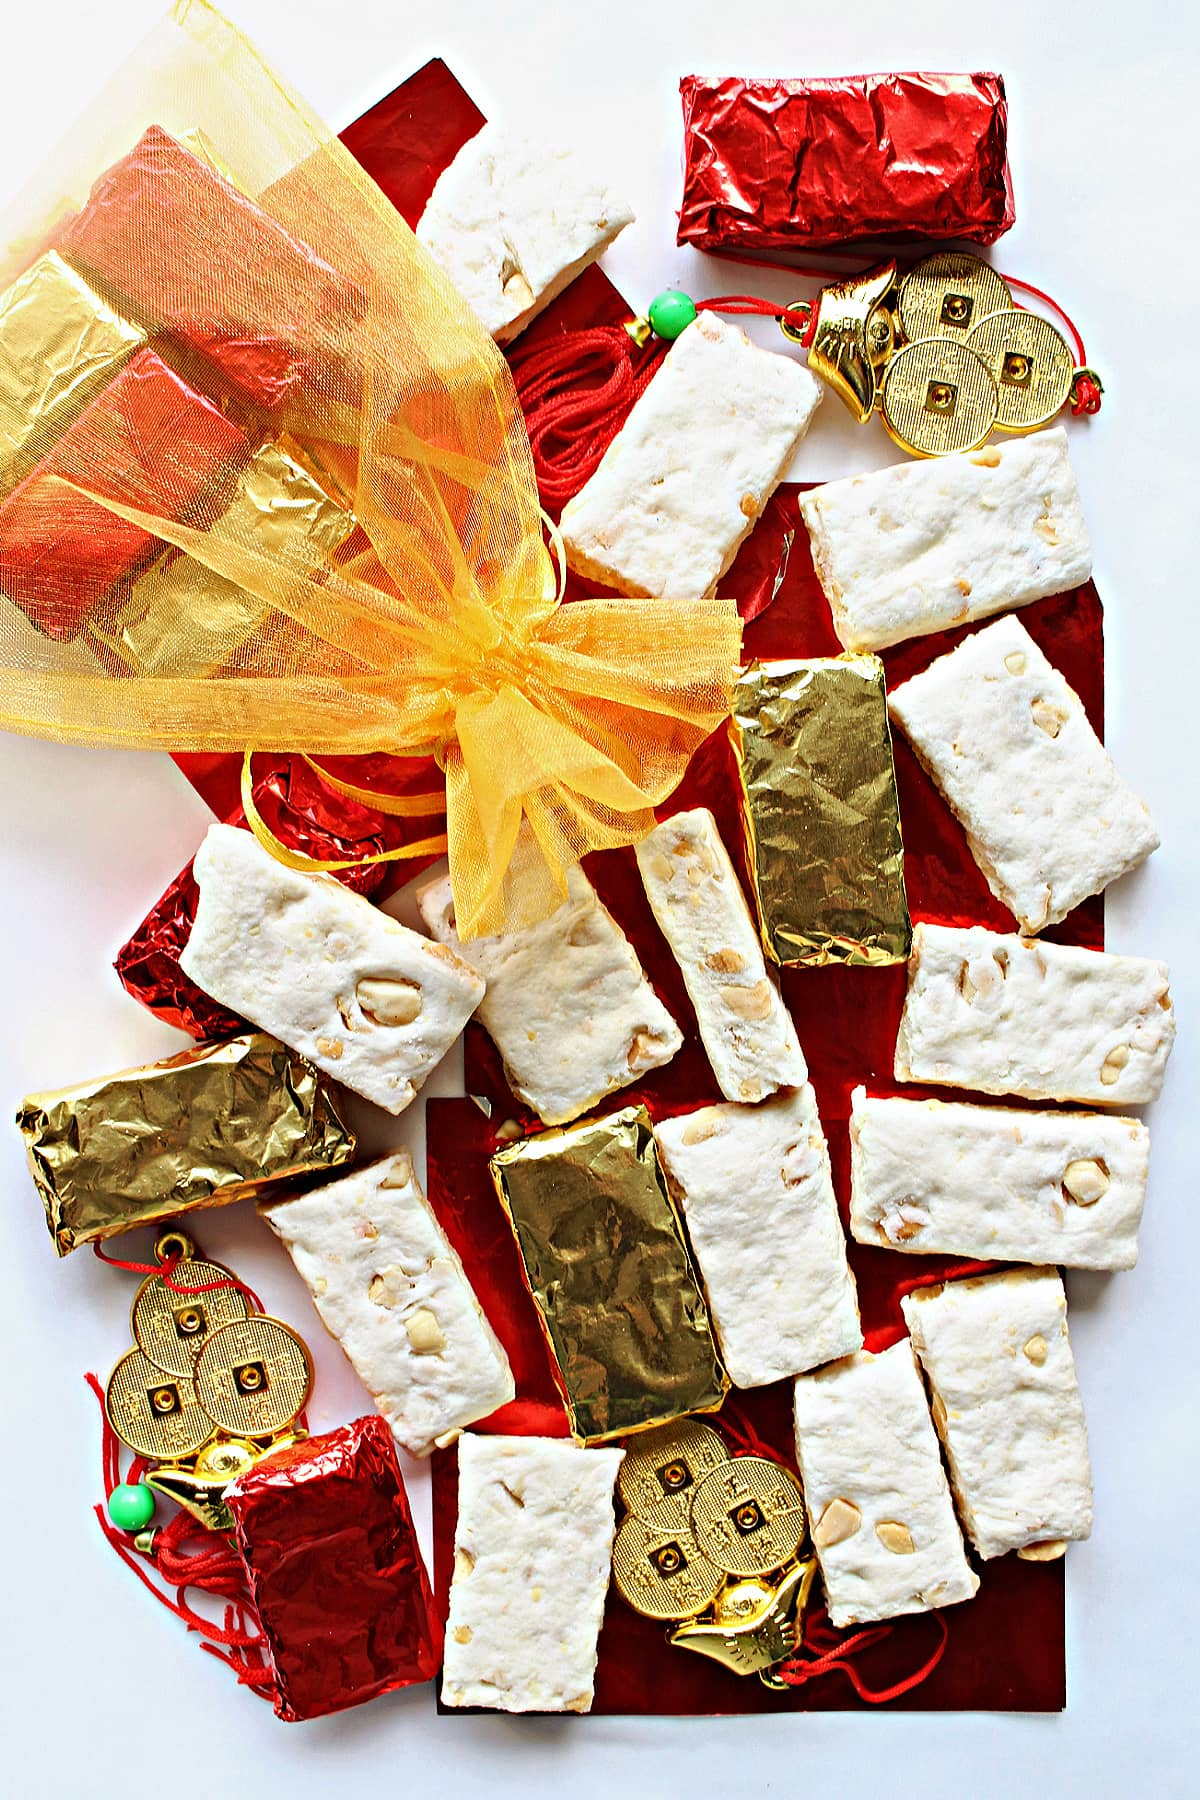 White rectangles of nougat peanut candy with some wrapped in gold and red foil.